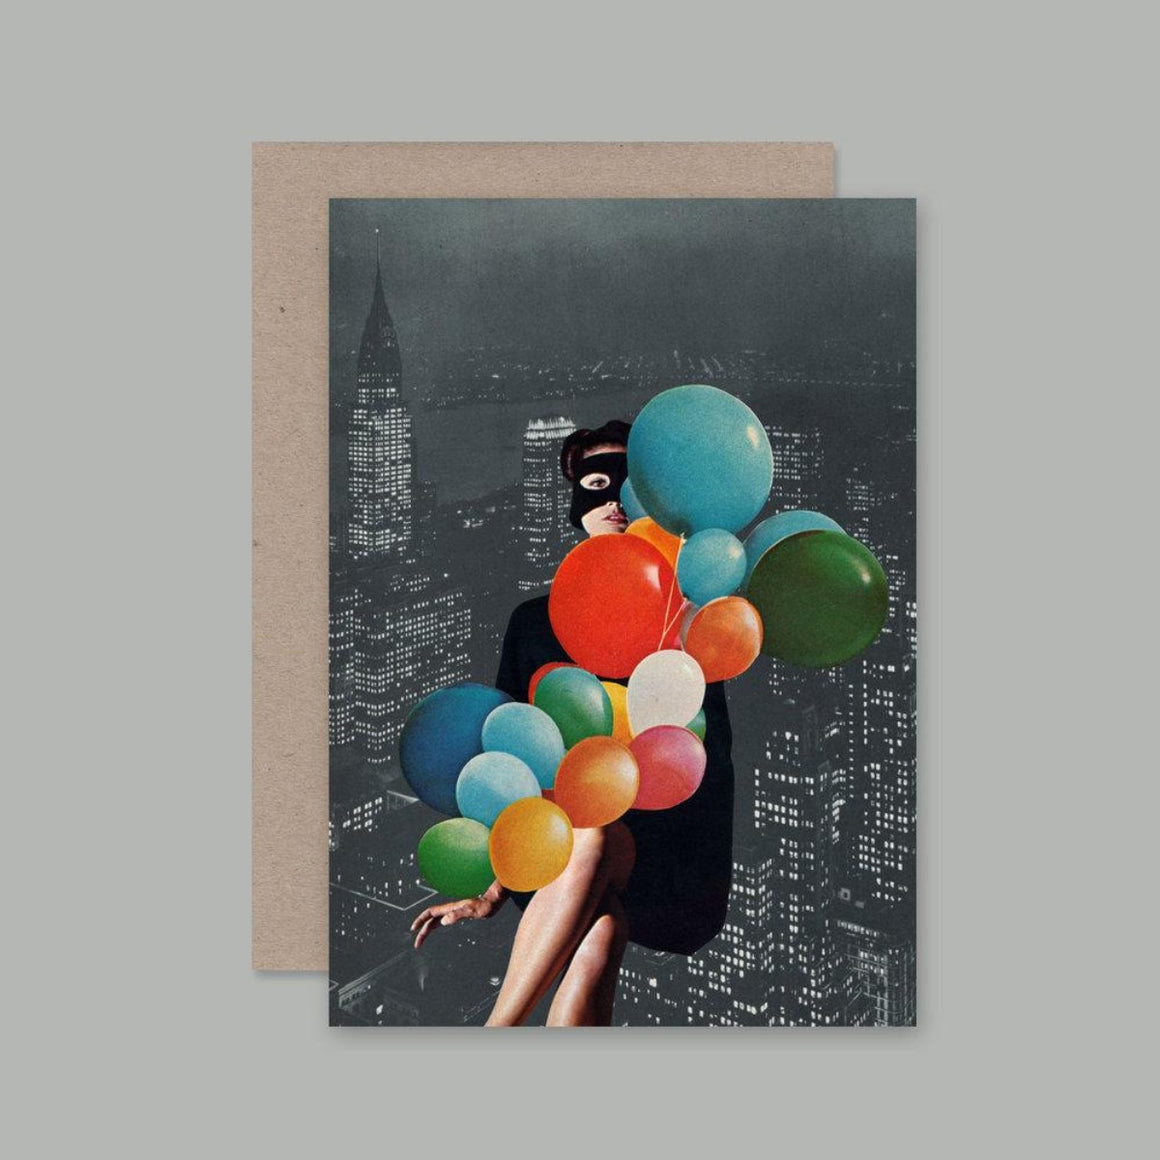 Collage image featuring a black and white landscape of a city then featuring a girl wearing a mask with a collection of colorful balloons which she is holding